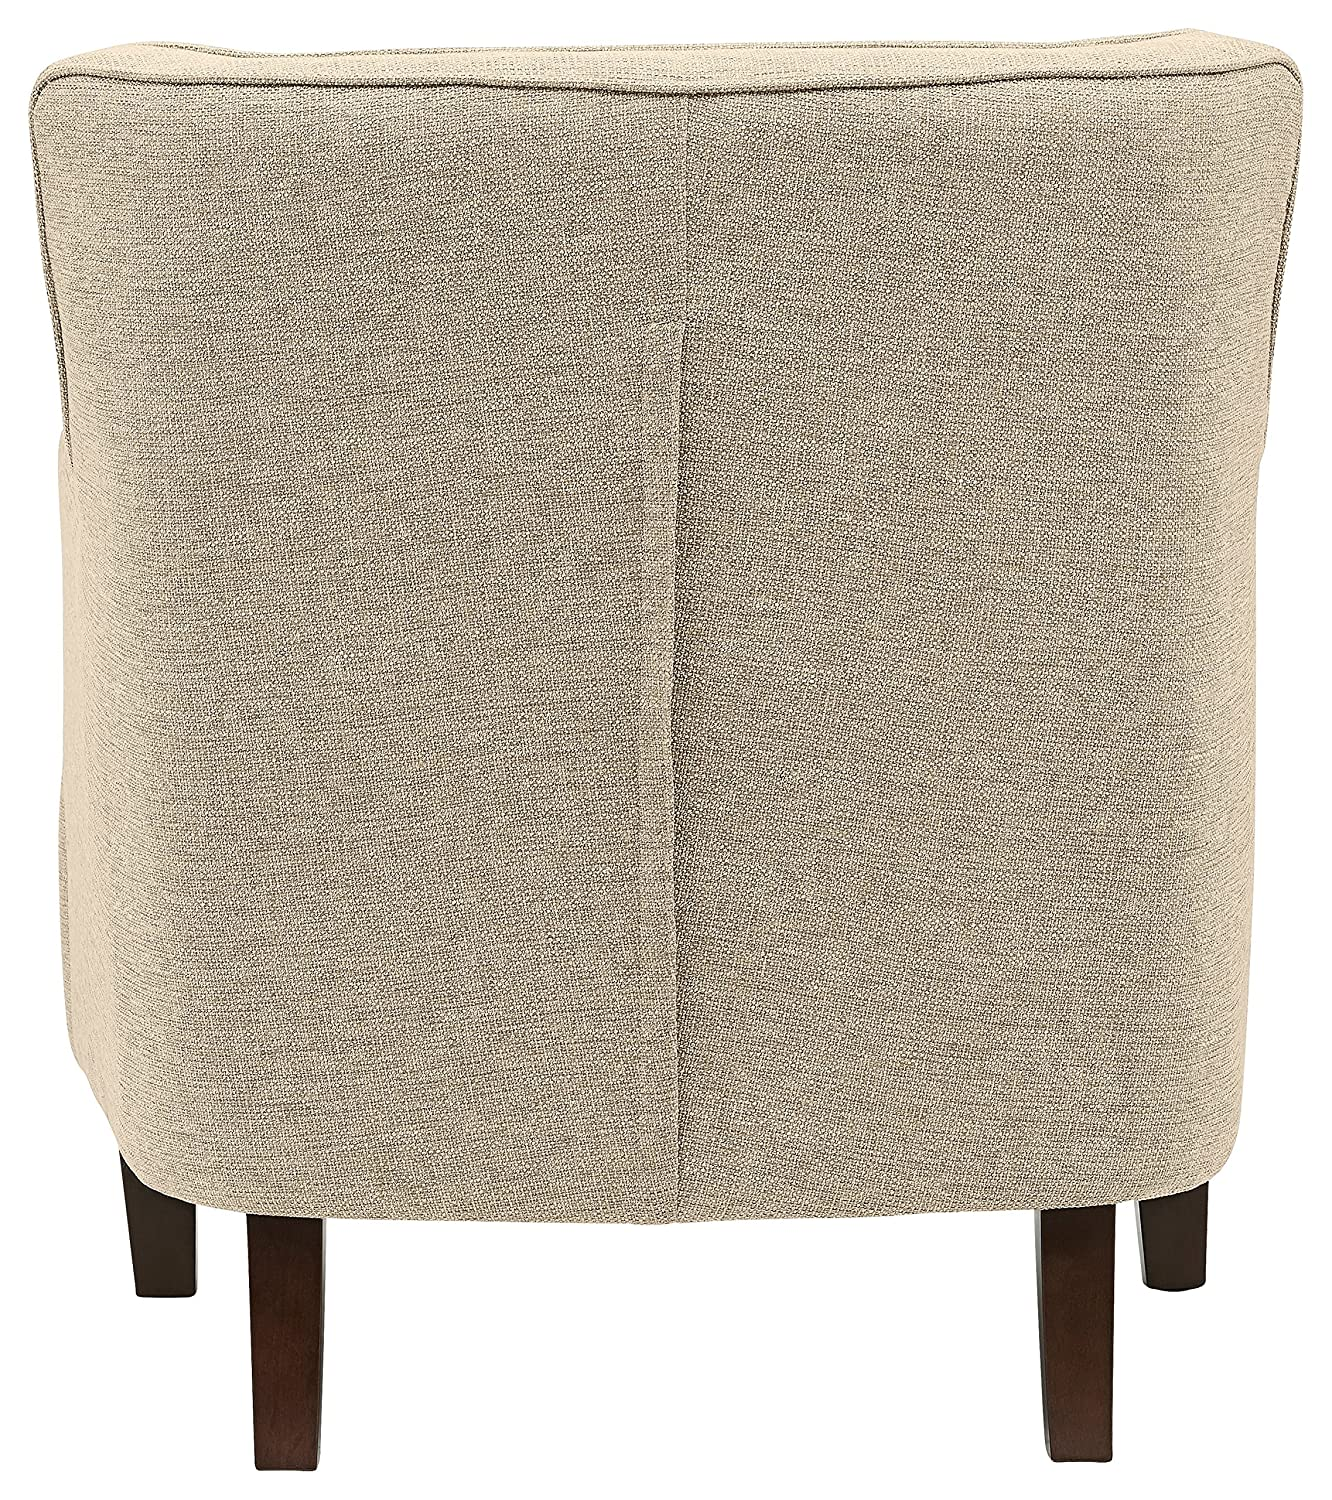 Stone Beam Decatur Modern Tufted Accent Chair, 32 W, Chair, Oatmeal